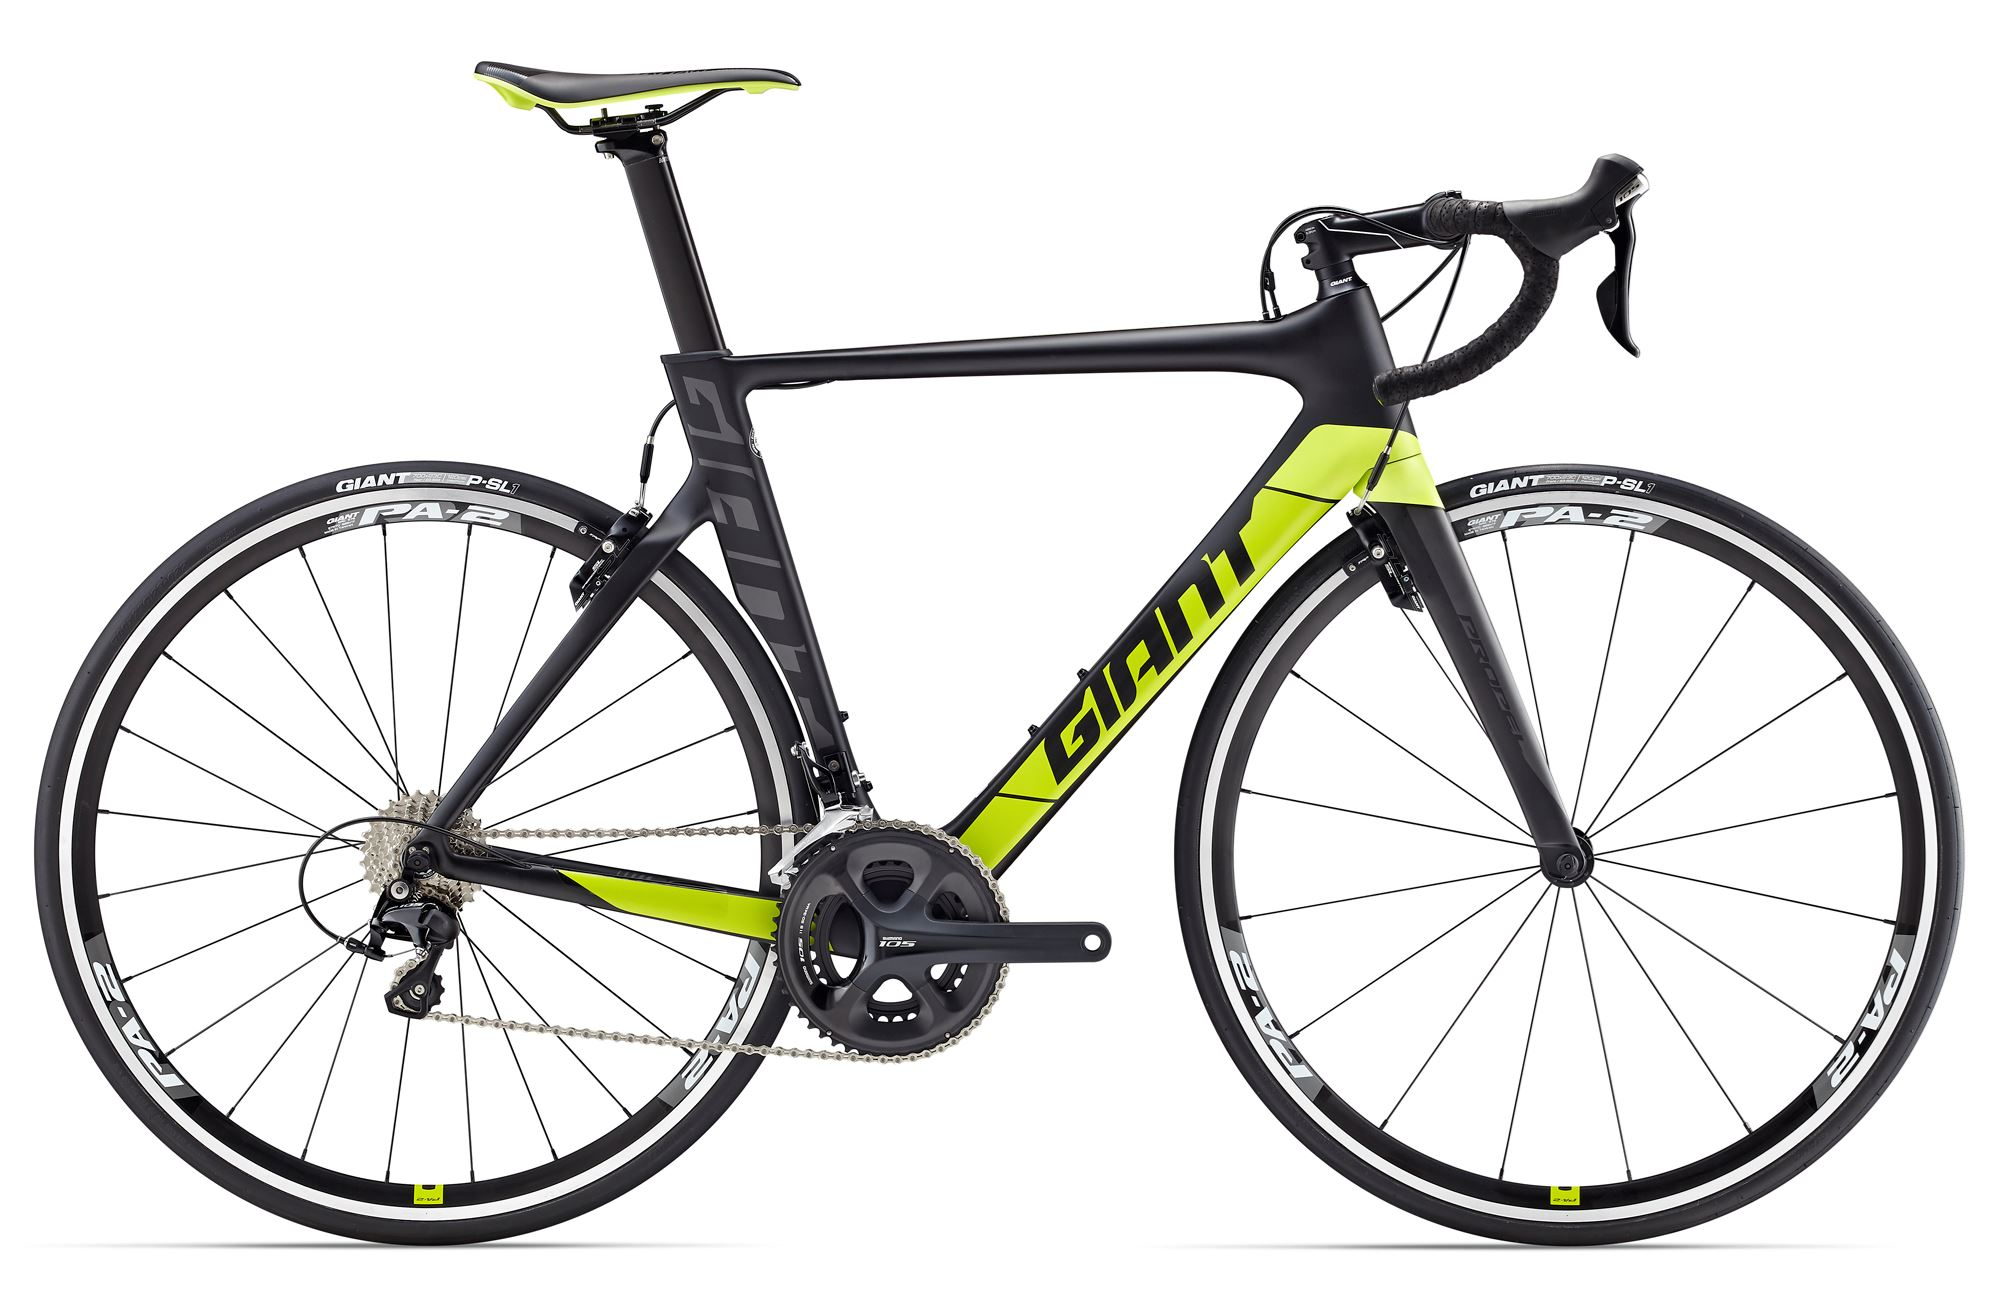 Product Giant Propel advanced 2